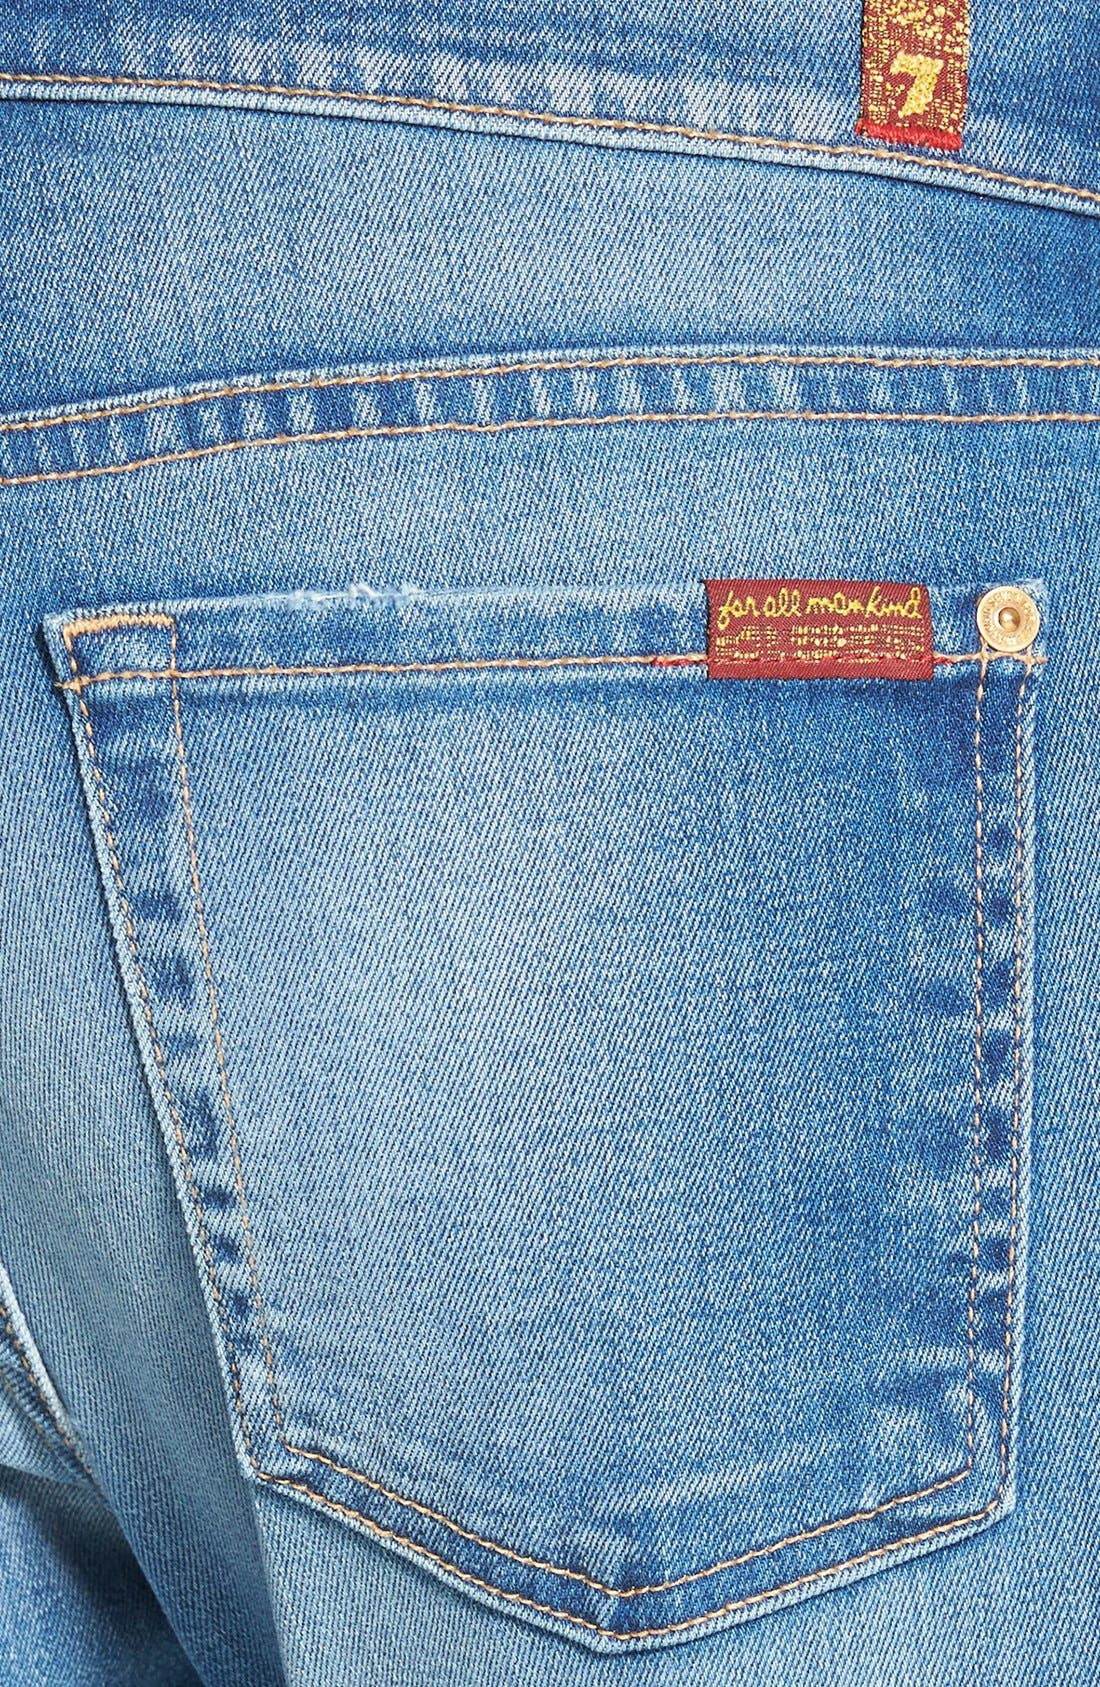 Alternate Image 3  - 7 For All Mankind® Relaxed Skinny Jeans (Bright Skies Blue)